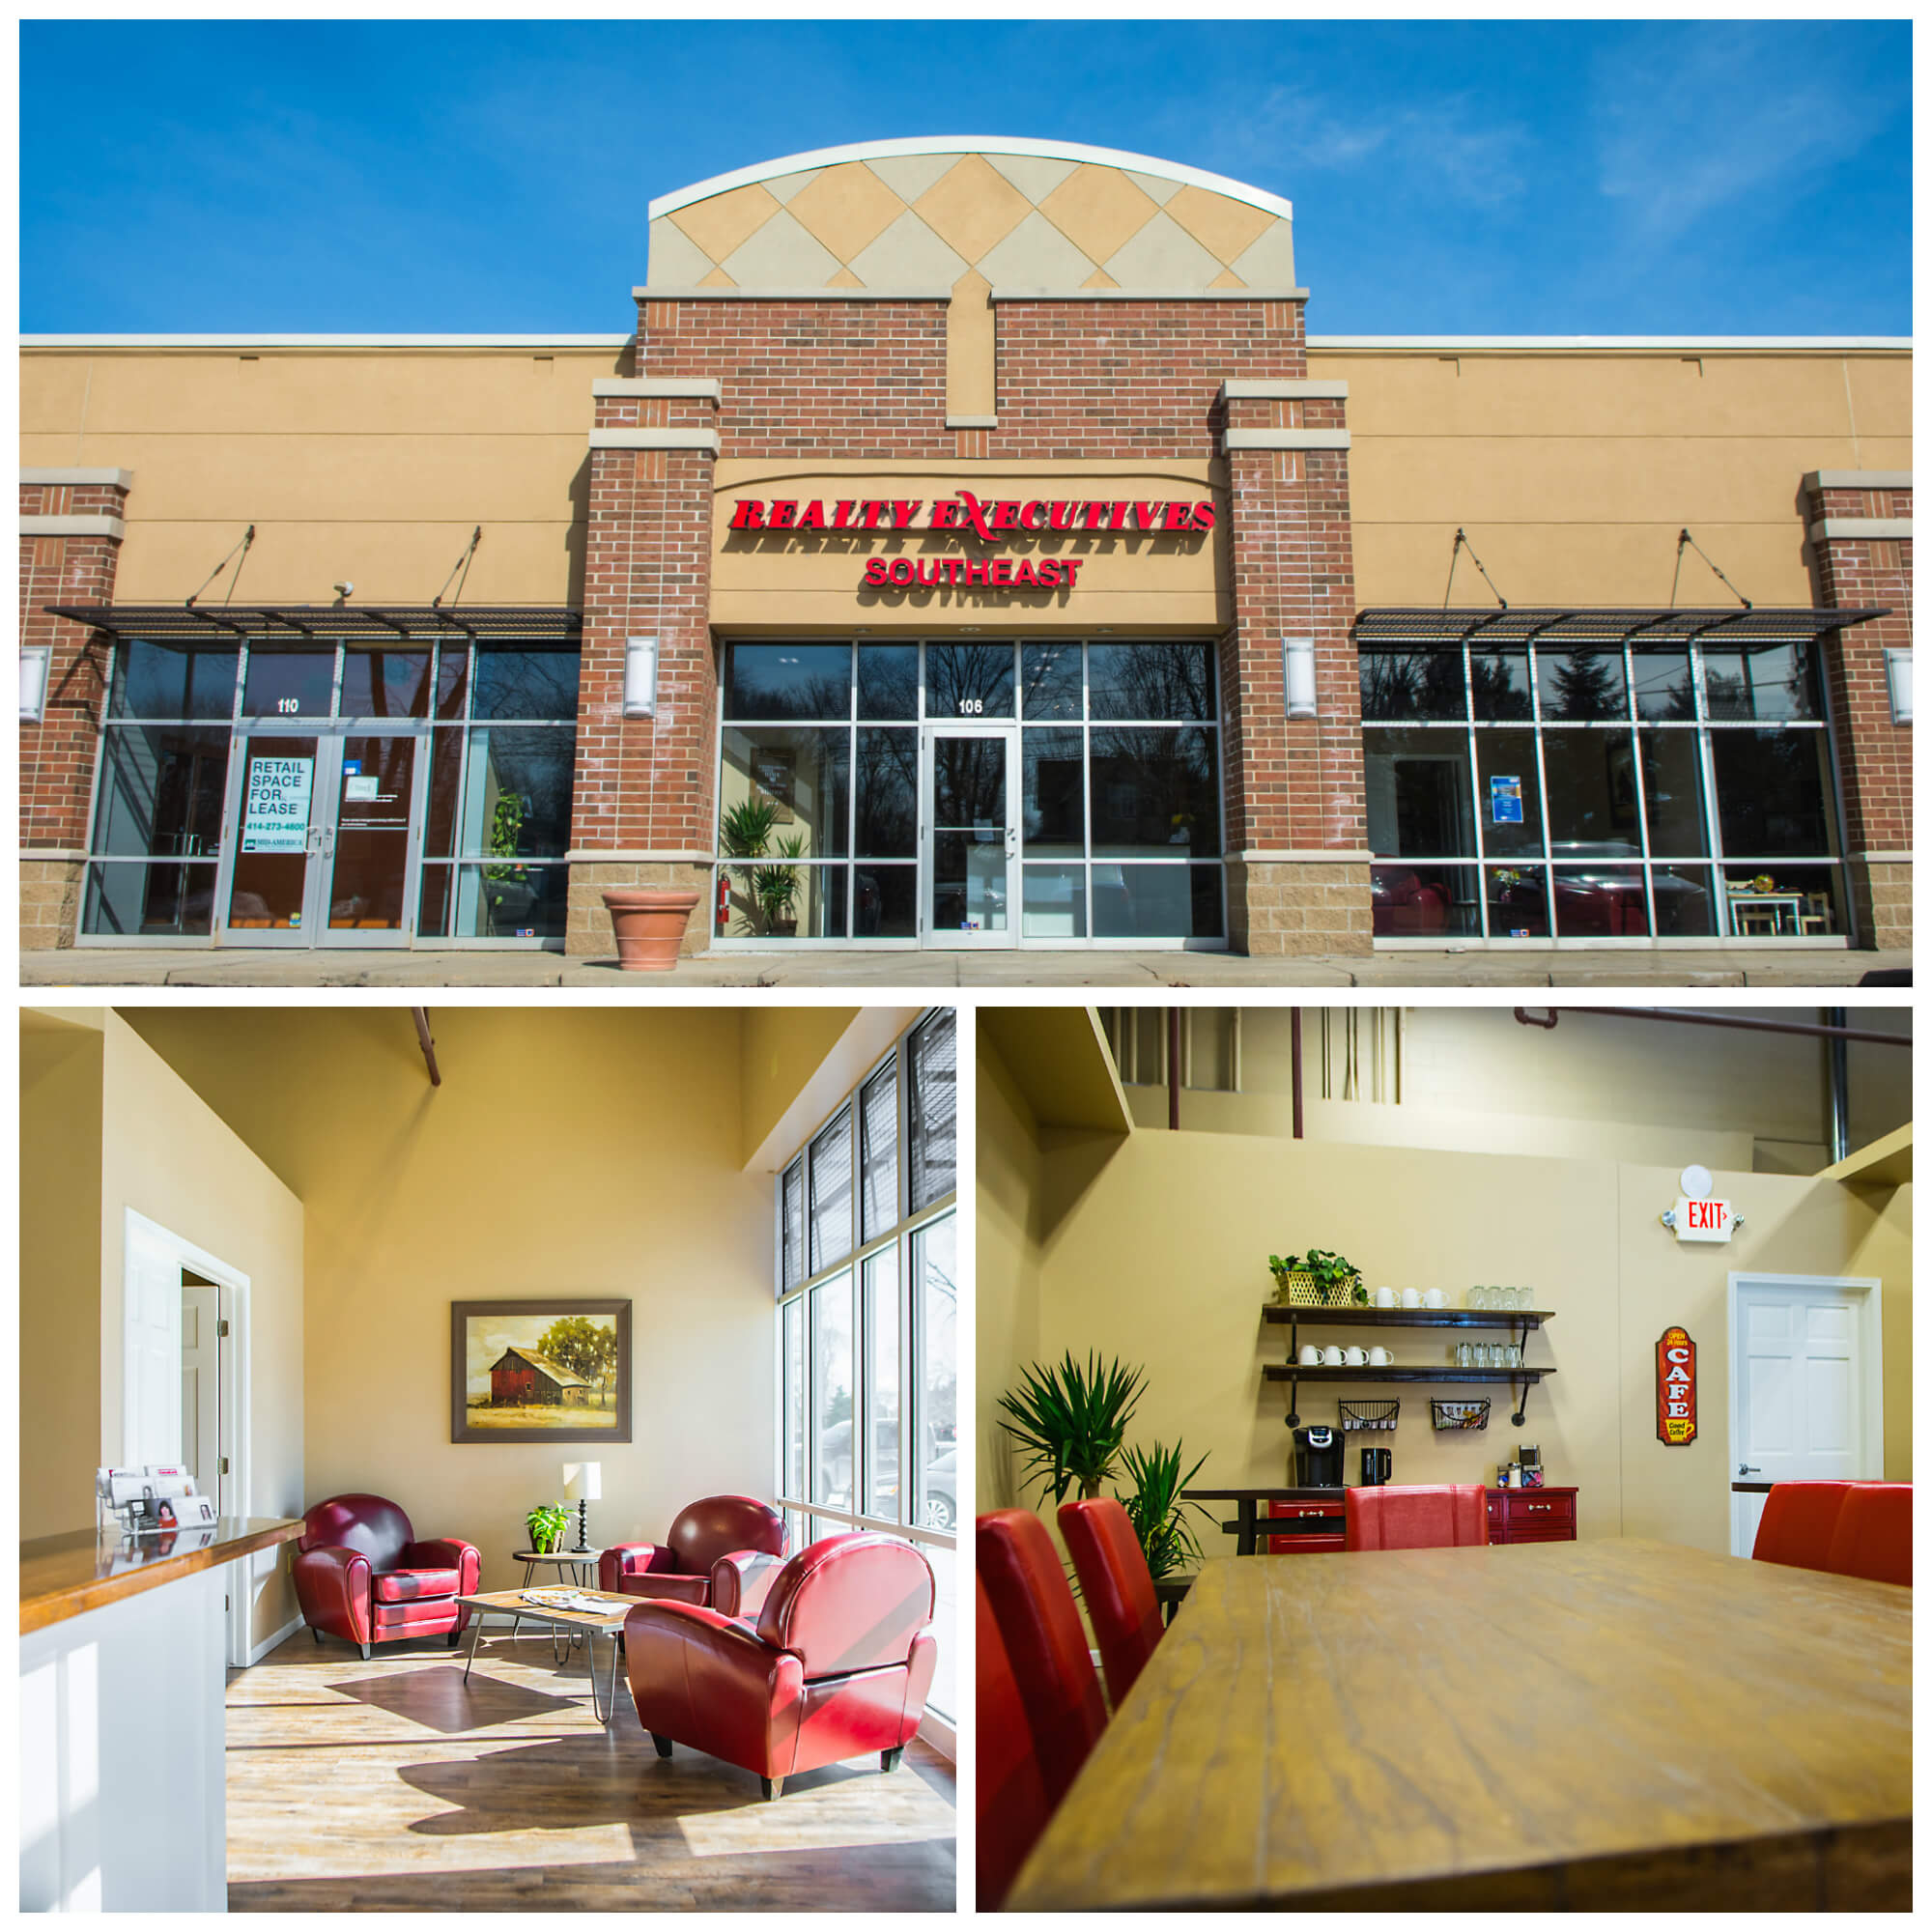 Realty Executives Southeast's new office